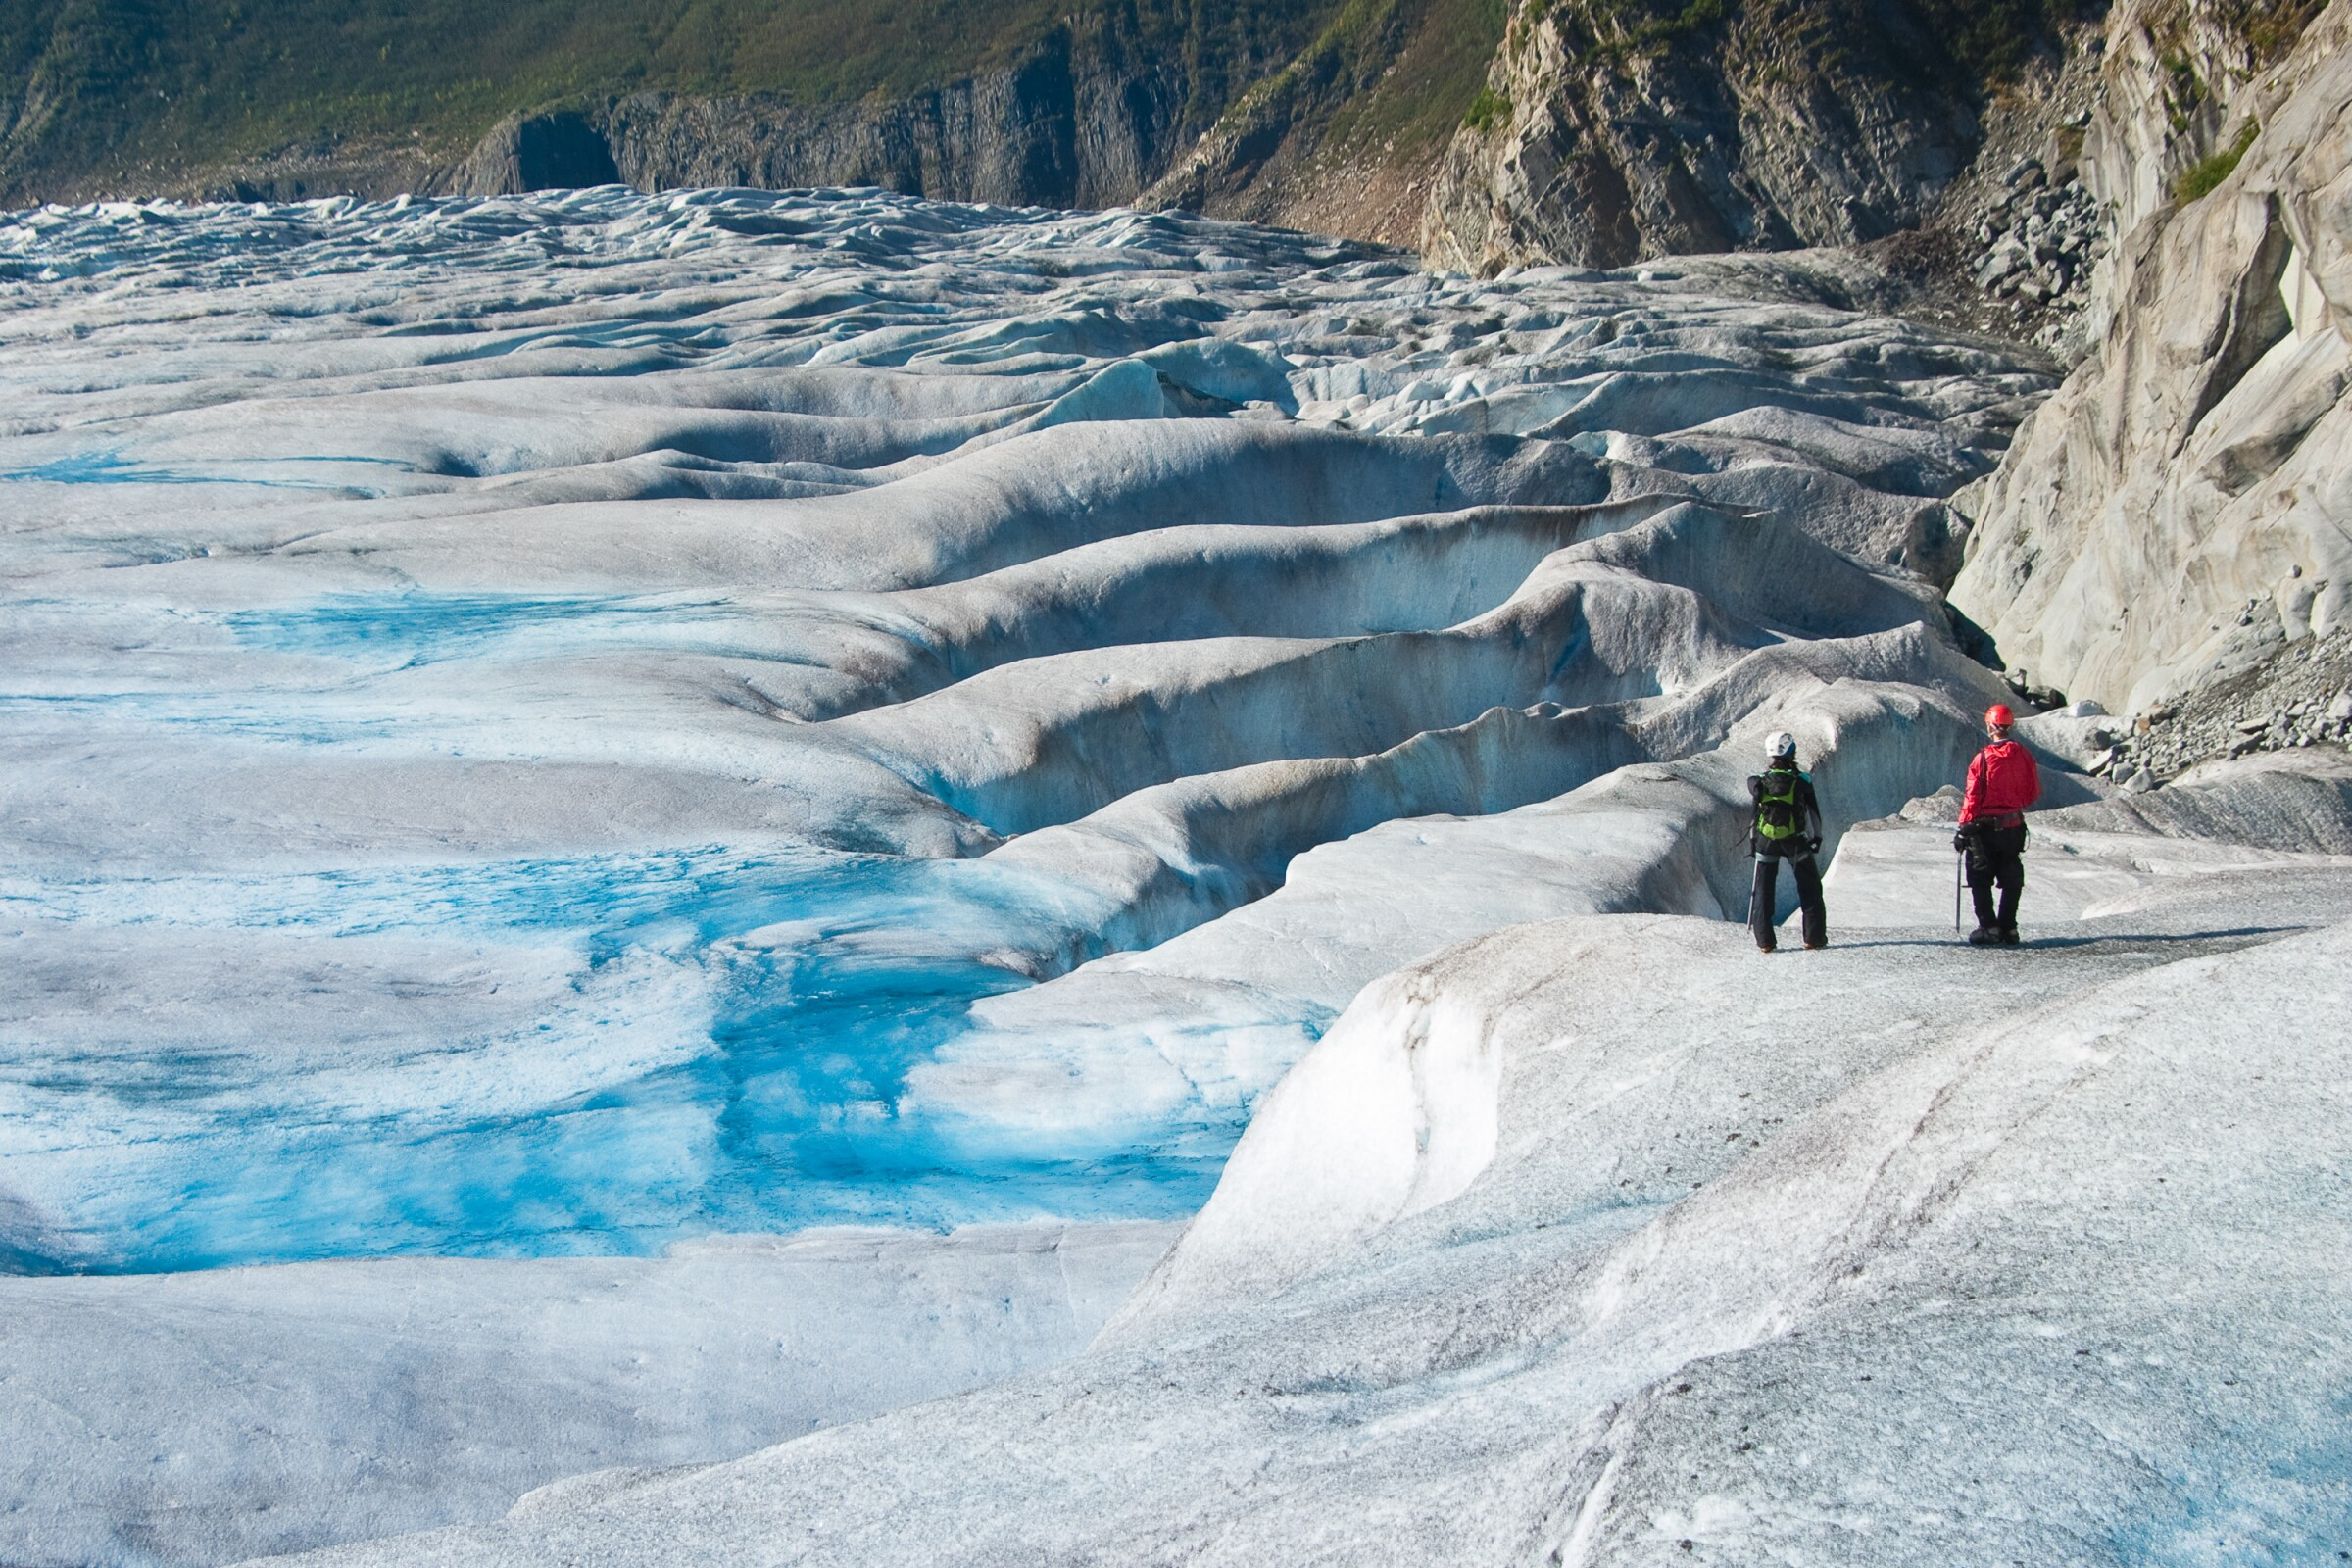 Two people stand on a glacier